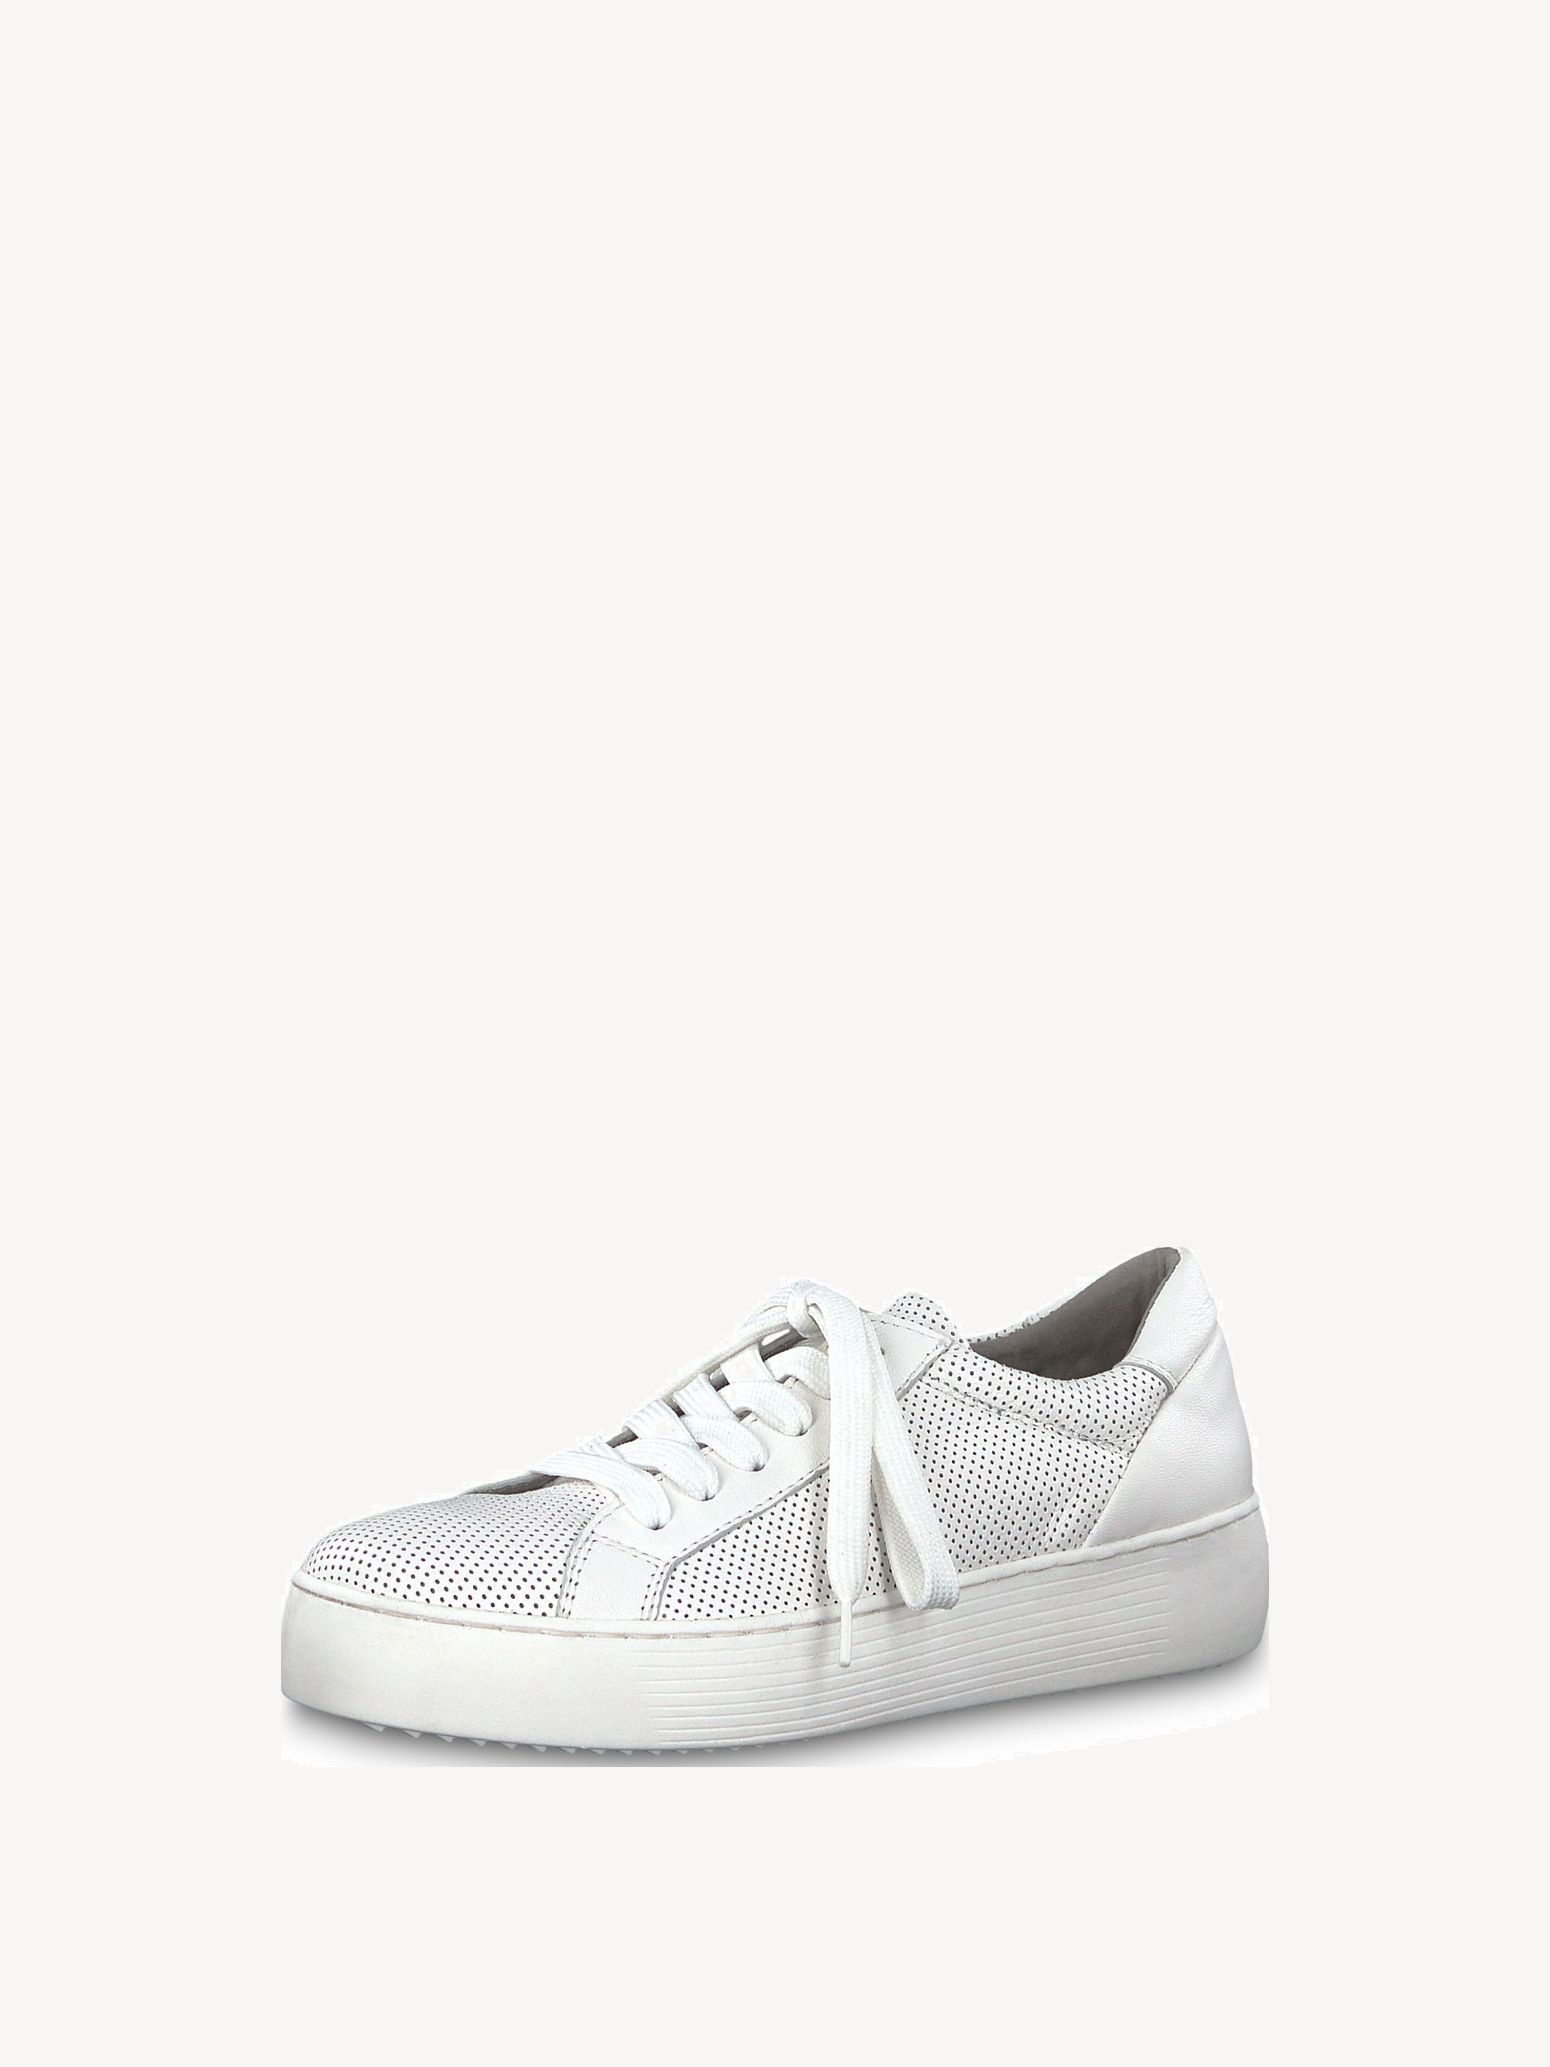 finest selection 69635 45b1e Gel, WHITE LEATHER, hi-res